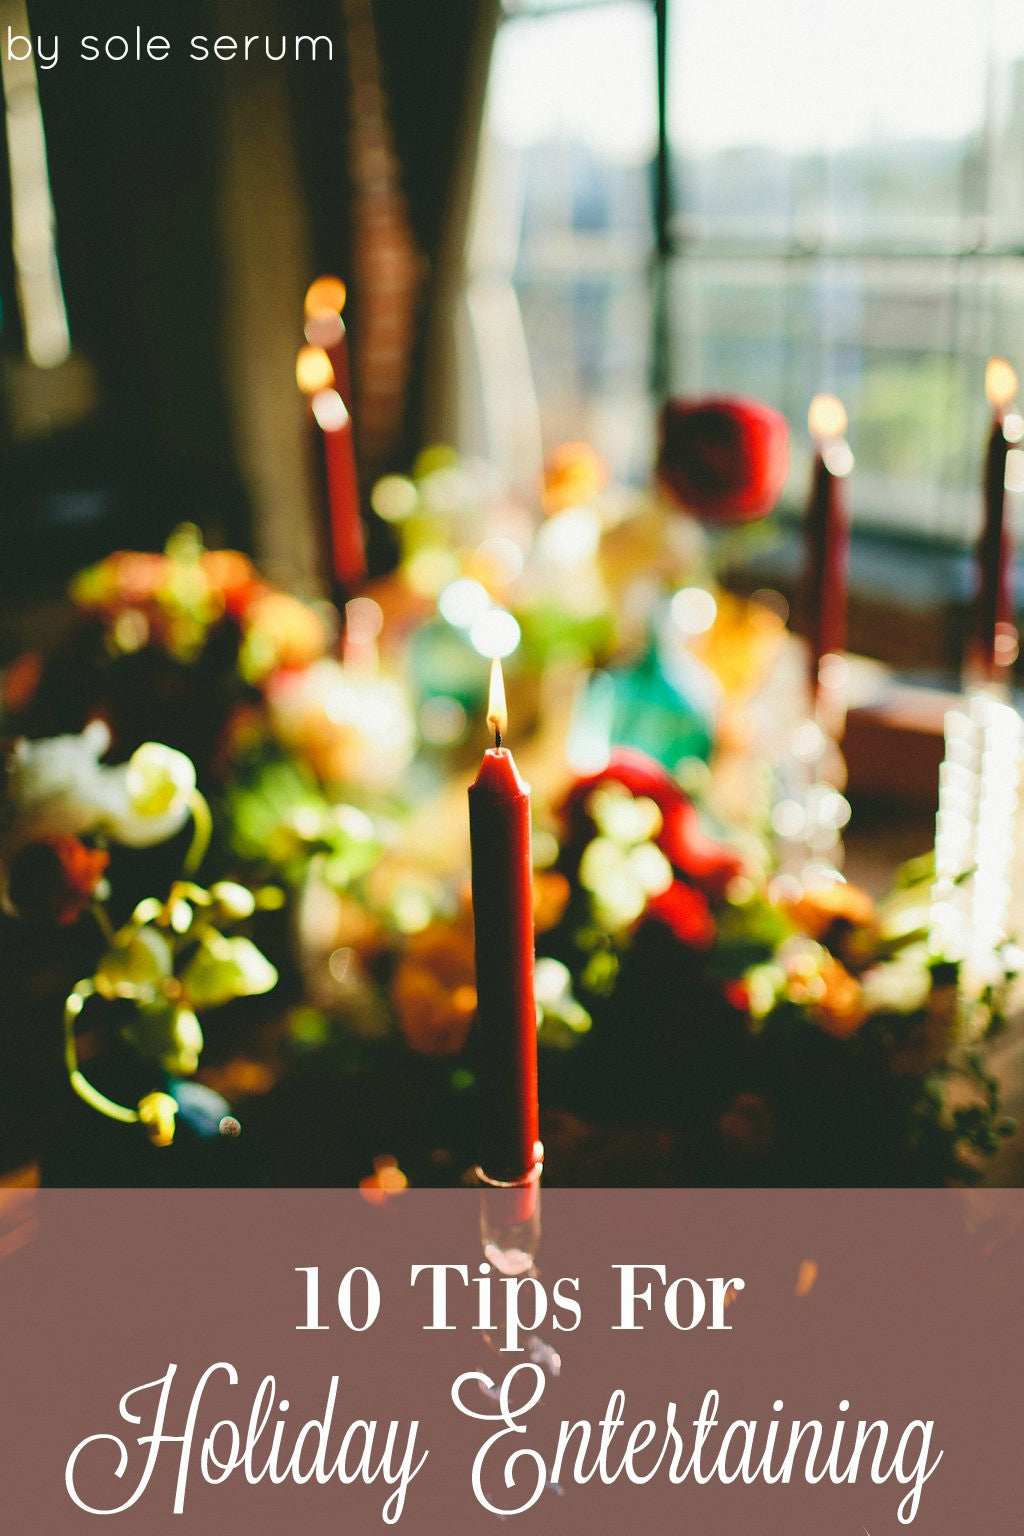 10 Tips For Holiday Entertaining